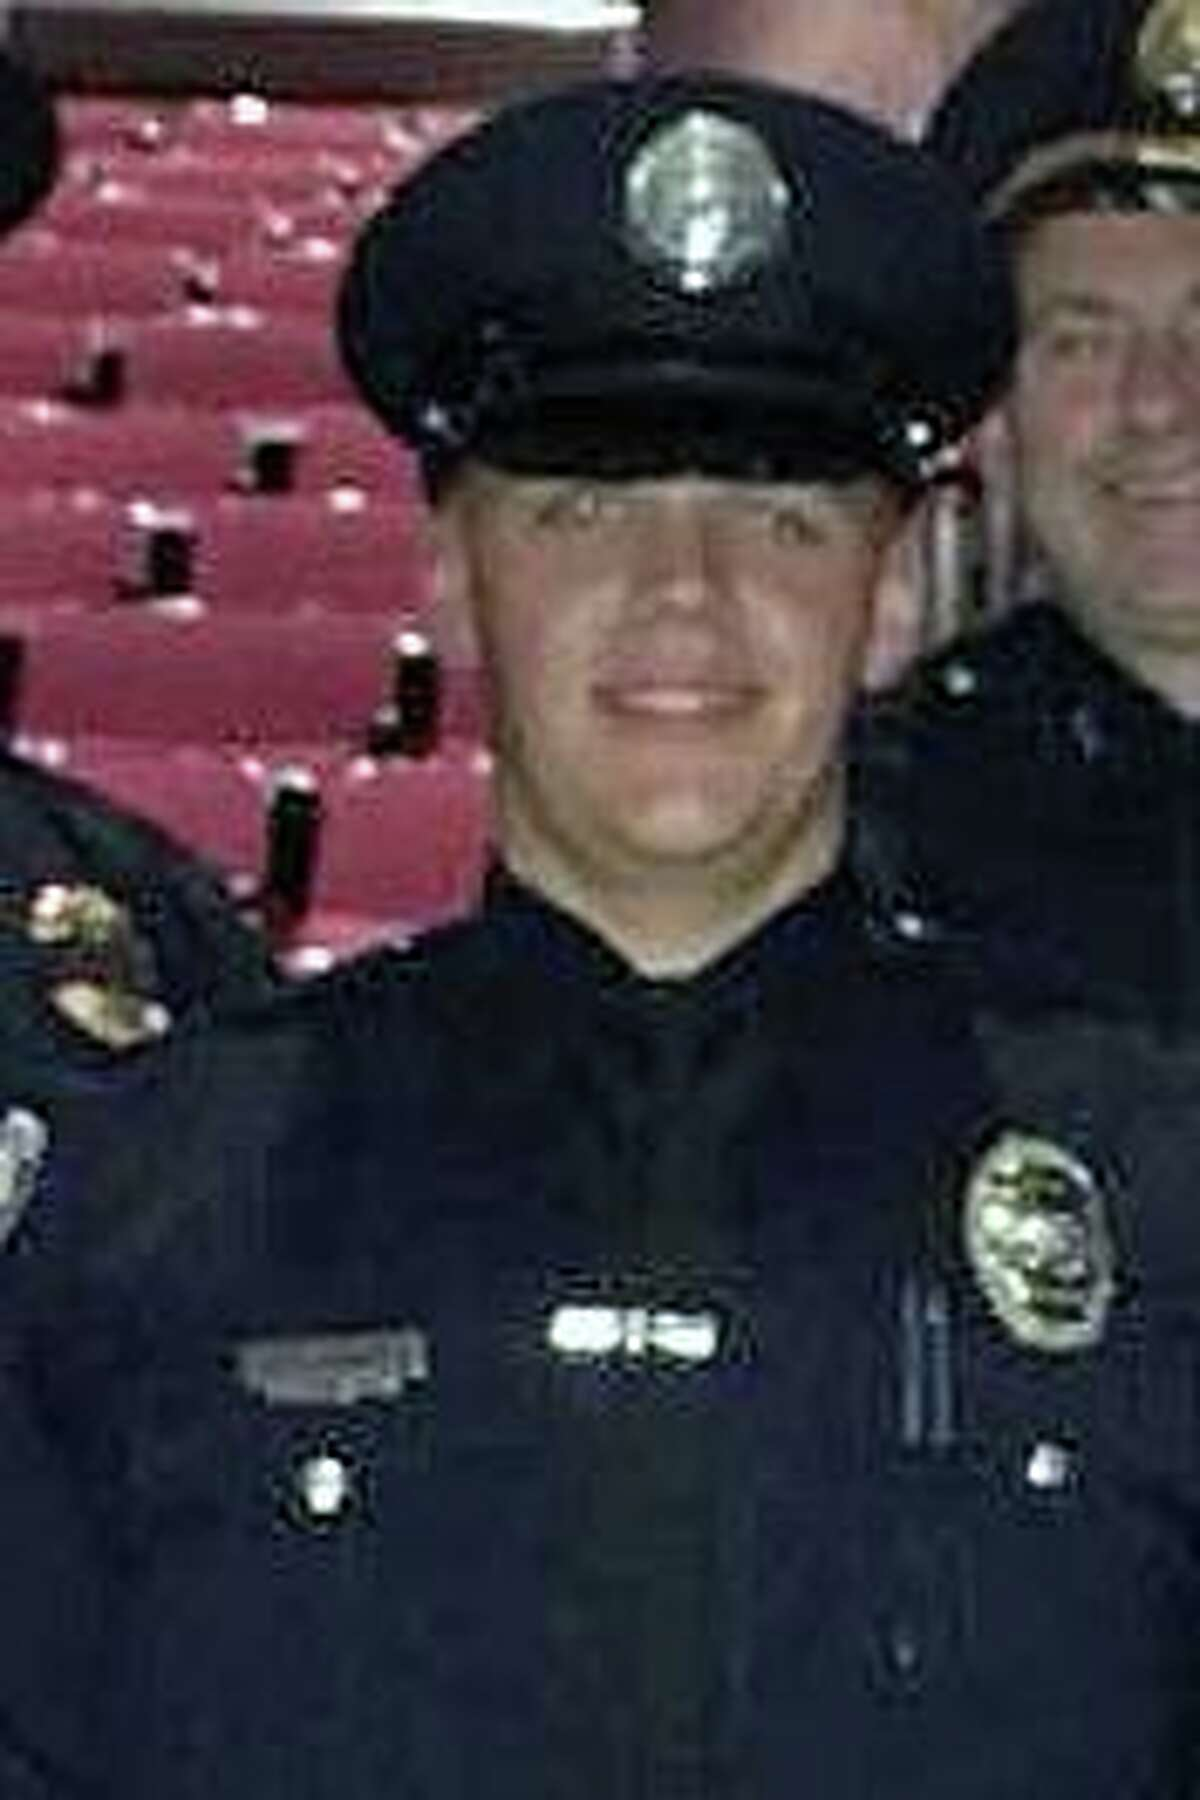 Officer Ben Lovett at his graduation from the police academy on Sept. 20, 2018. Lovett died Tuesday, July 13, 2021, from injuries he suffered in a late June crash while off duty in Tolland, Conn.